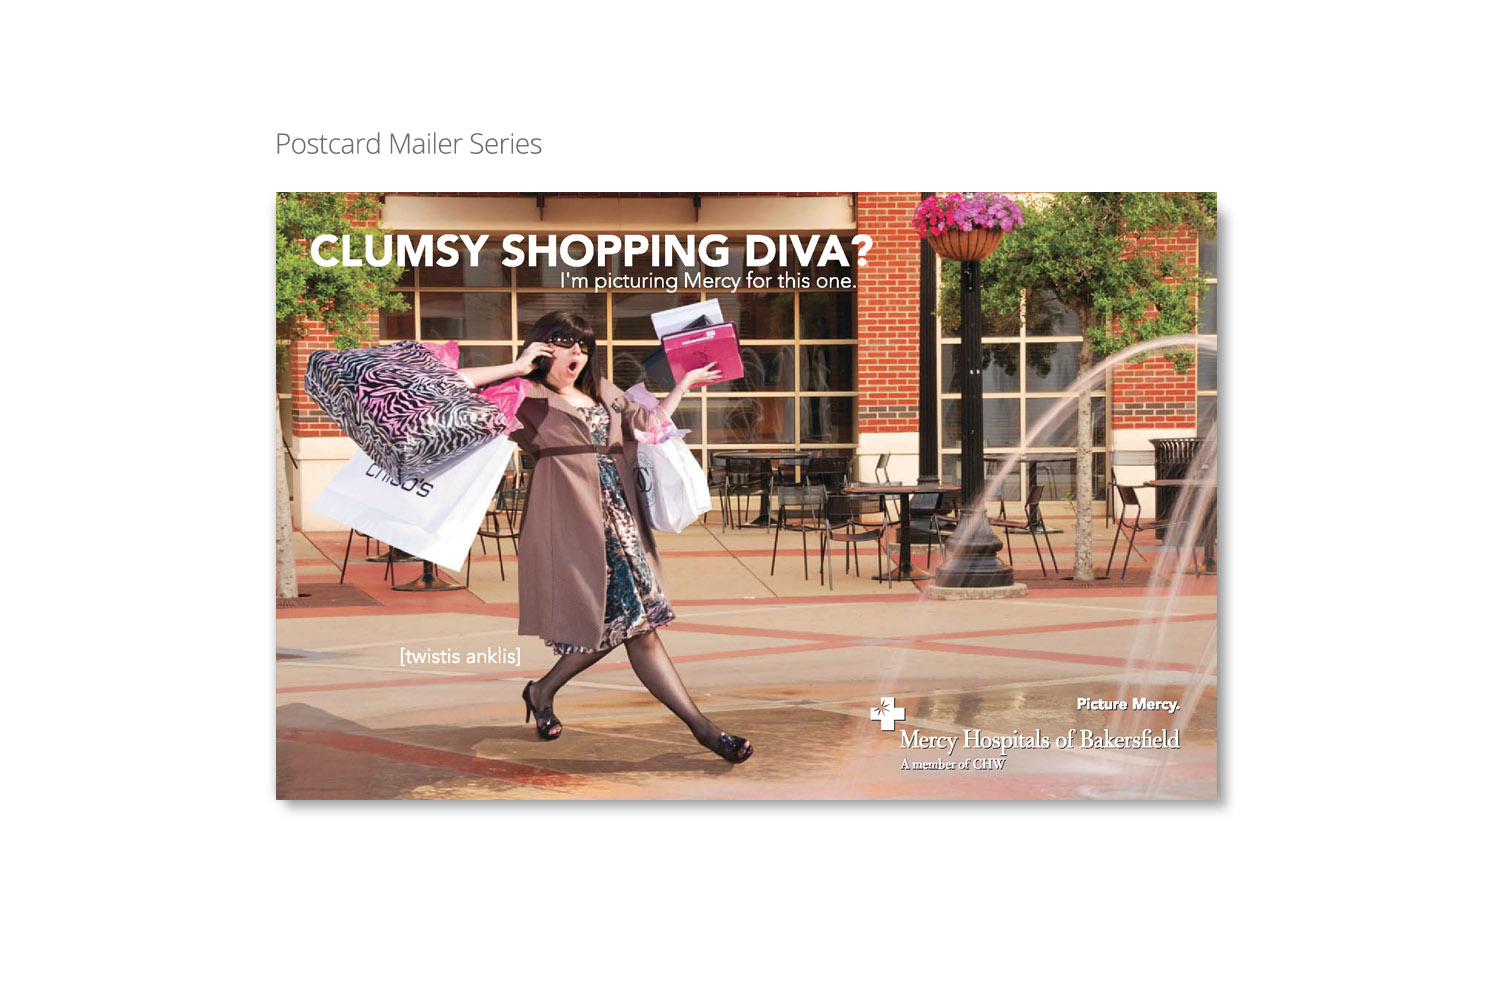 Mercy ER postcard campaign by DMI Agency, Visalia, CA - Shopping Diva